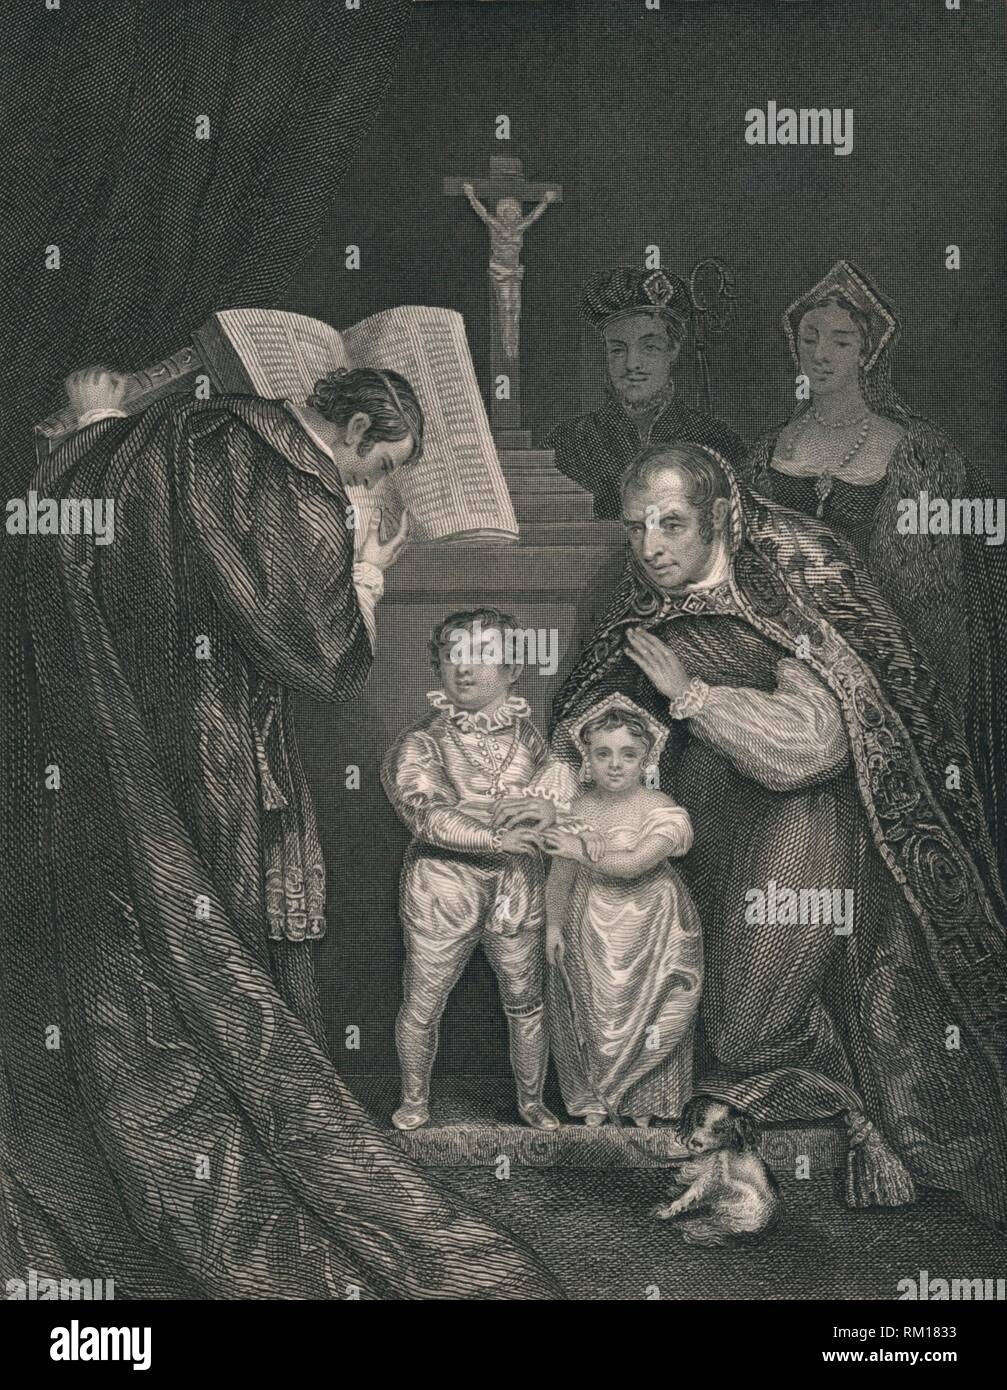 'The Marriage of Richard Duke of York. (Brother to Edward V.)', 1478, (1821), (mid 19th century). Engraving after a painting made in 1821, depicting the marriage of Richard of Shrewsbury, Duke of York (1473-1483) and Anne de Mowbray, 8th Countess of Norfolk (1472-1481). They were married in St Stephen's Chapel in Westminster, London, when Richard was about four years old and Anne was five. Richard and his older brother Edward ('The Princes in the Tower'), mysteriously disappeared shortly after Richard III usurped the throne of England in 1483. [John Tallis & Company, London & New York] - Stock Image